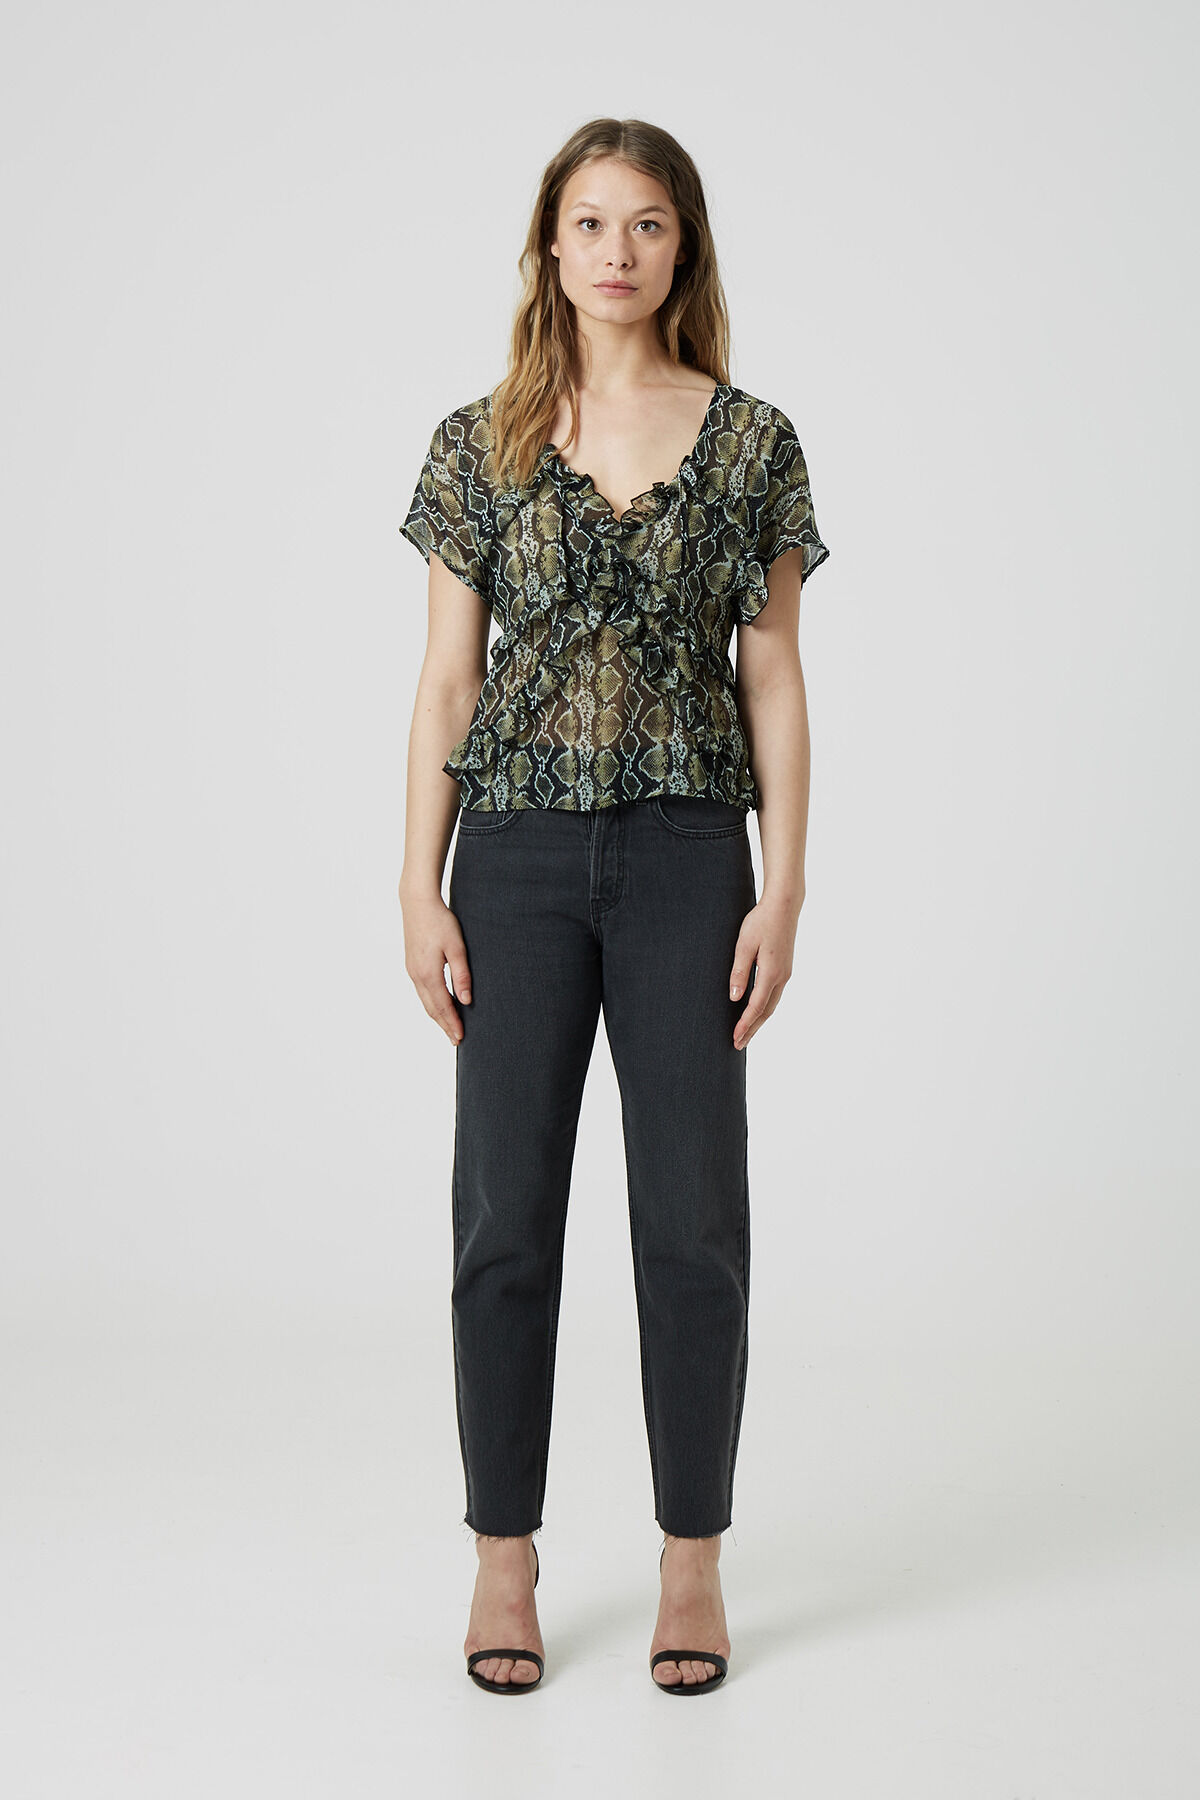 MADISON JEAN Pure cotton denim - High-rise, Slim Fit